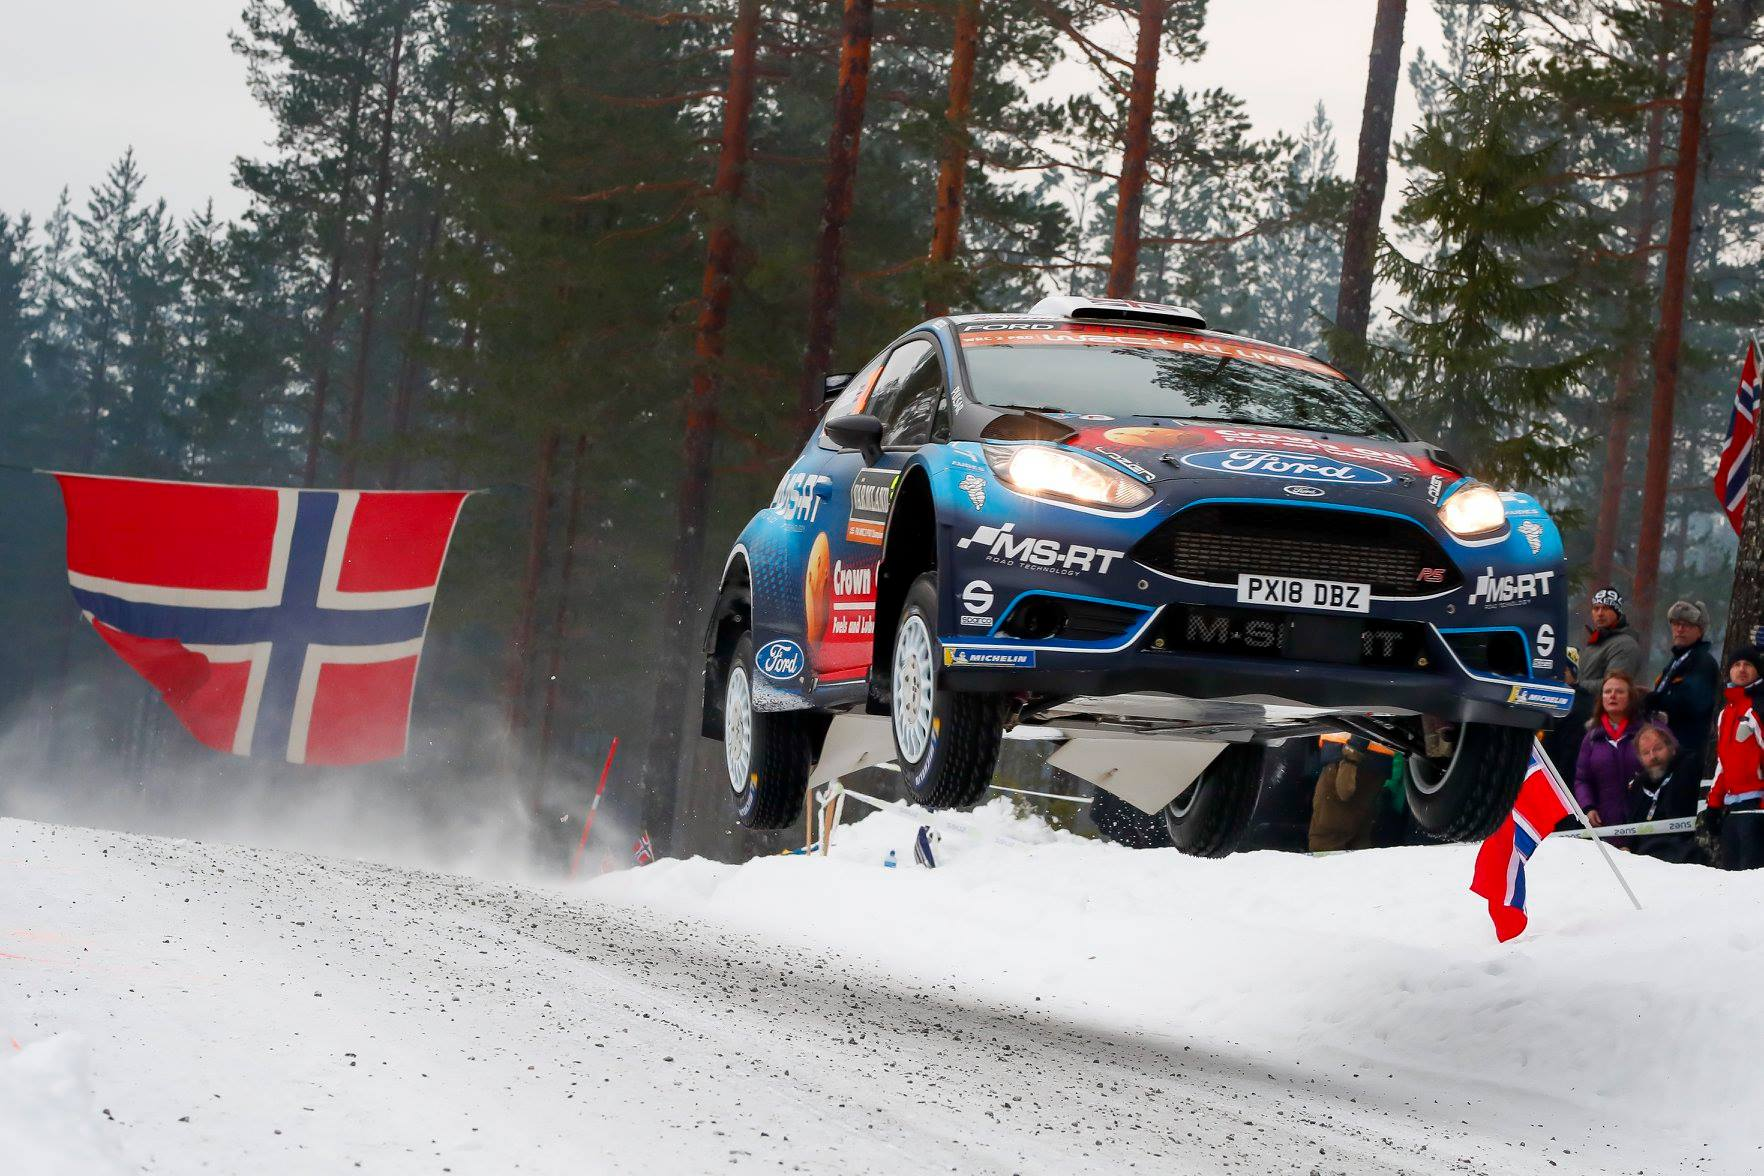 WRC Rally Sweden 2019 – Badiu pana in SuperRally; schimbare de lider in WRC